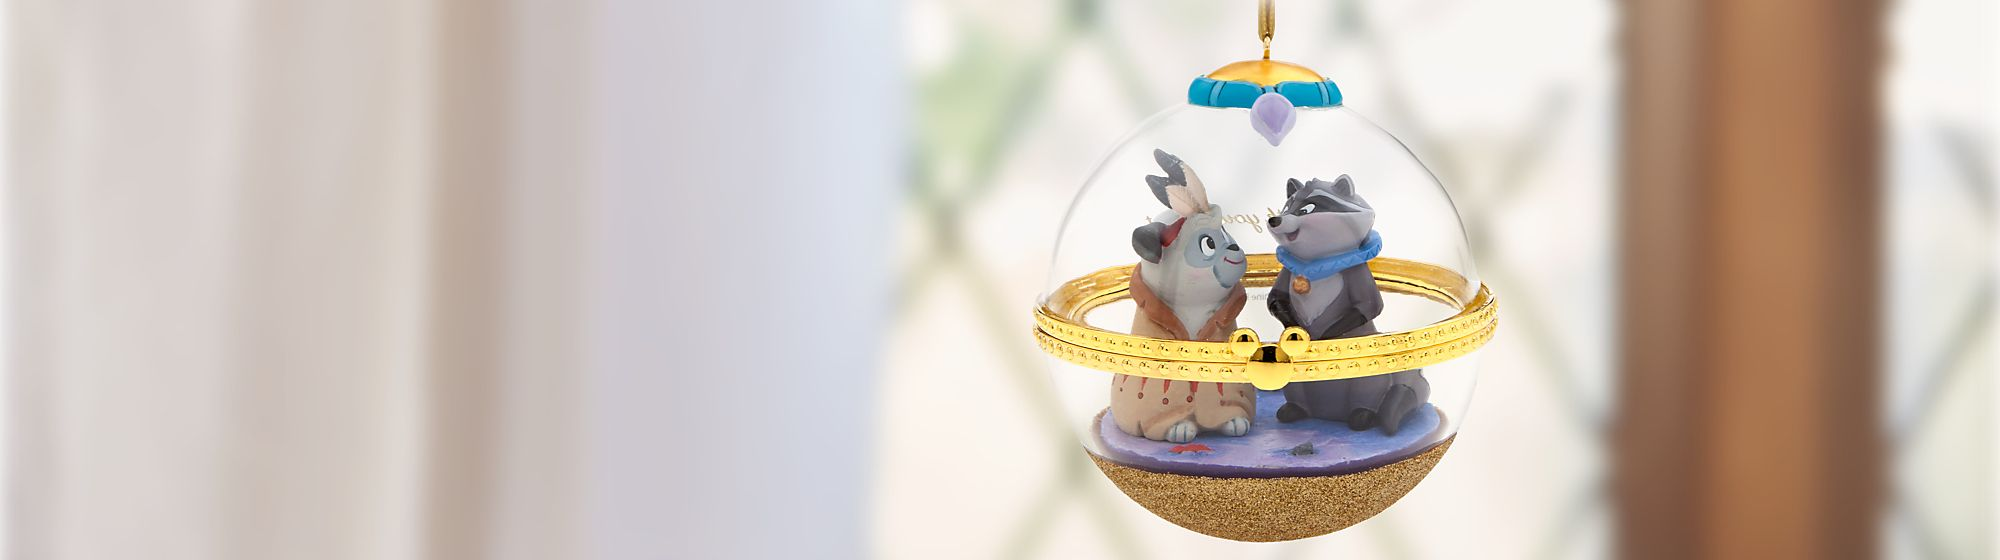 Dynamic Duos Hanging Ornament Let Meeko and Percy make a charming addition to your home